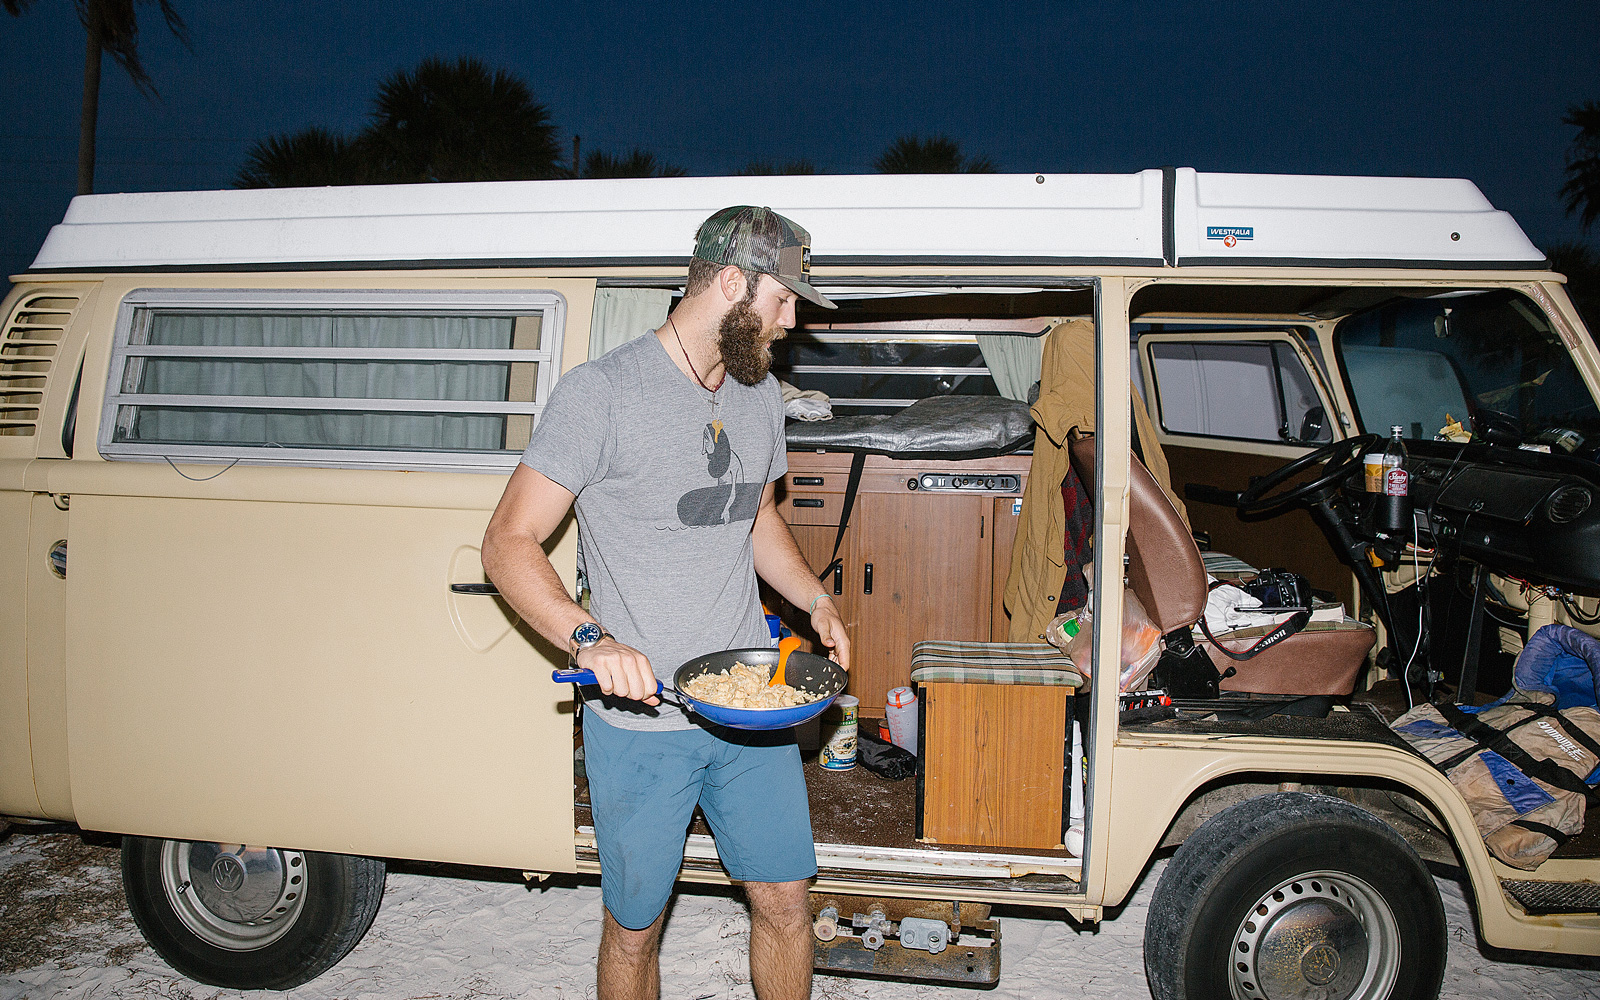 Top Blue Jays prospect Daniel Norris lives by his own code